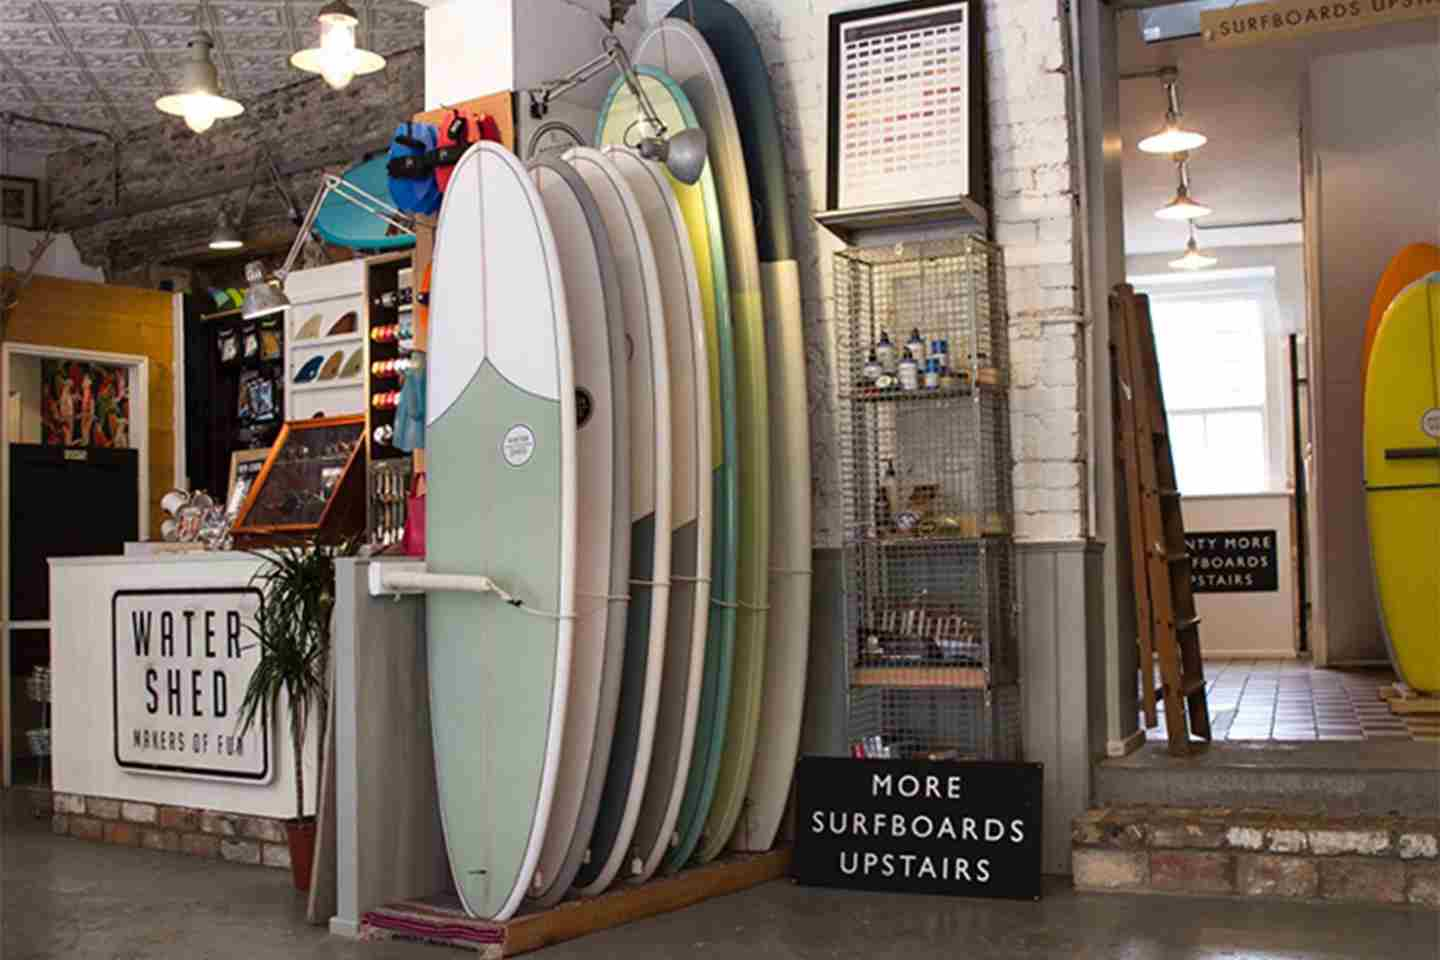 Watershed-surf-shop-in-Newquay.jpg